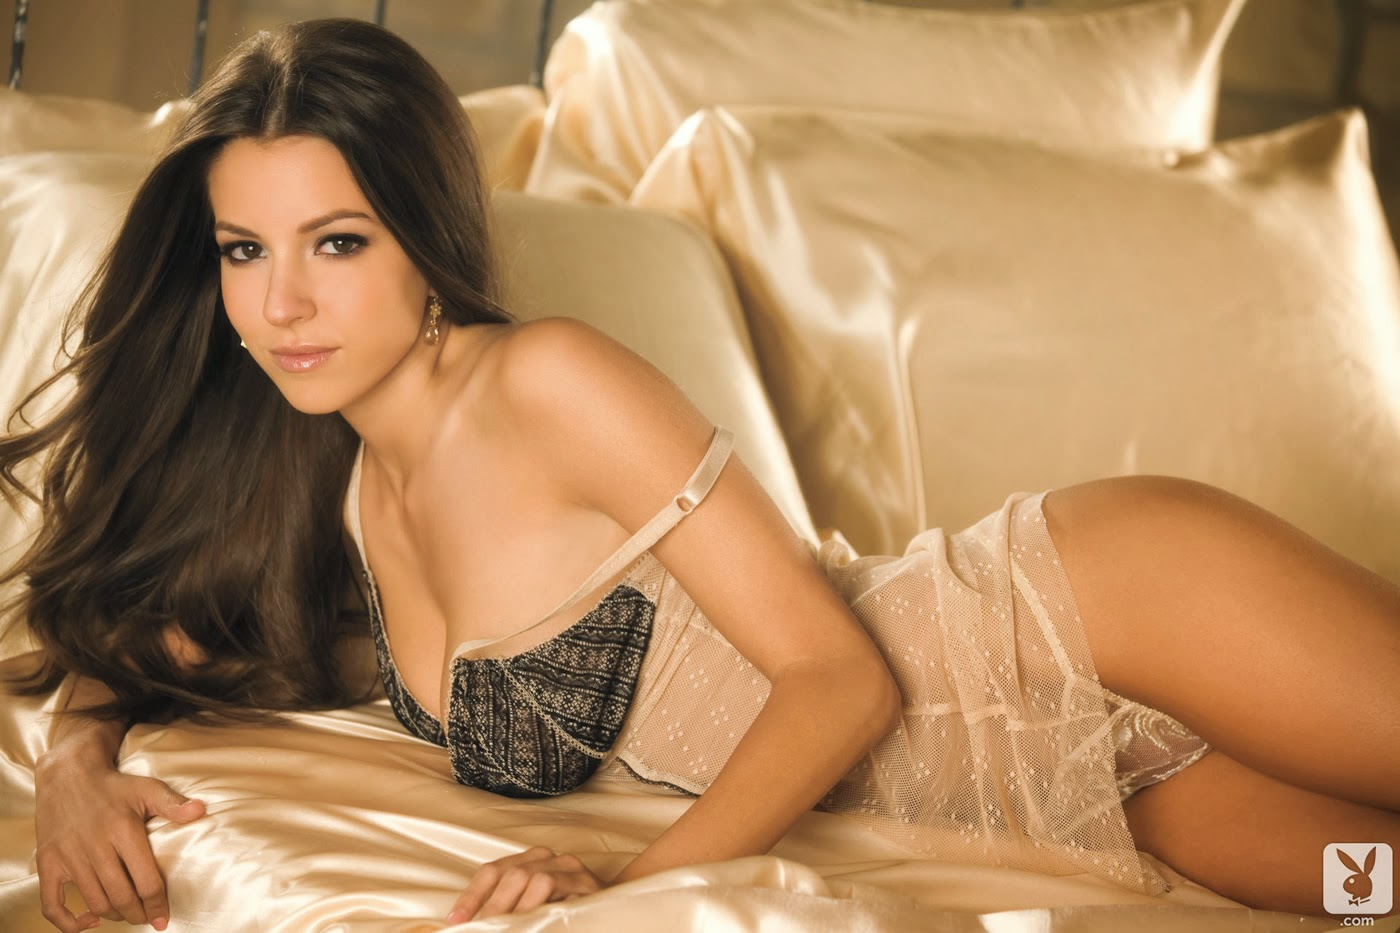 olivia wilde hot wallpapers - free widescreen wallpaper @ a too z